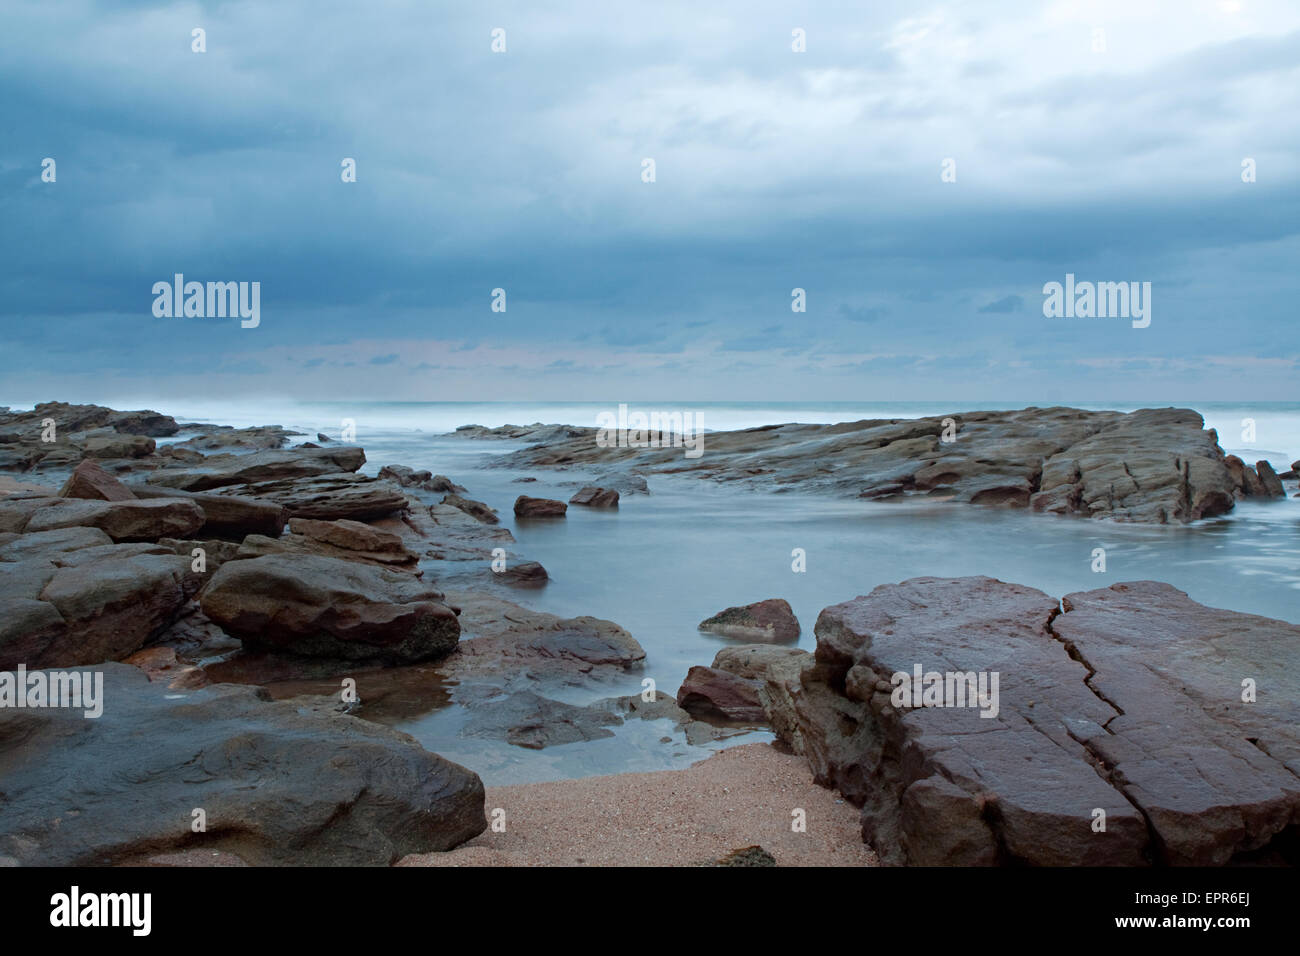 sea rockpool on stormy overcast day - Stock Image